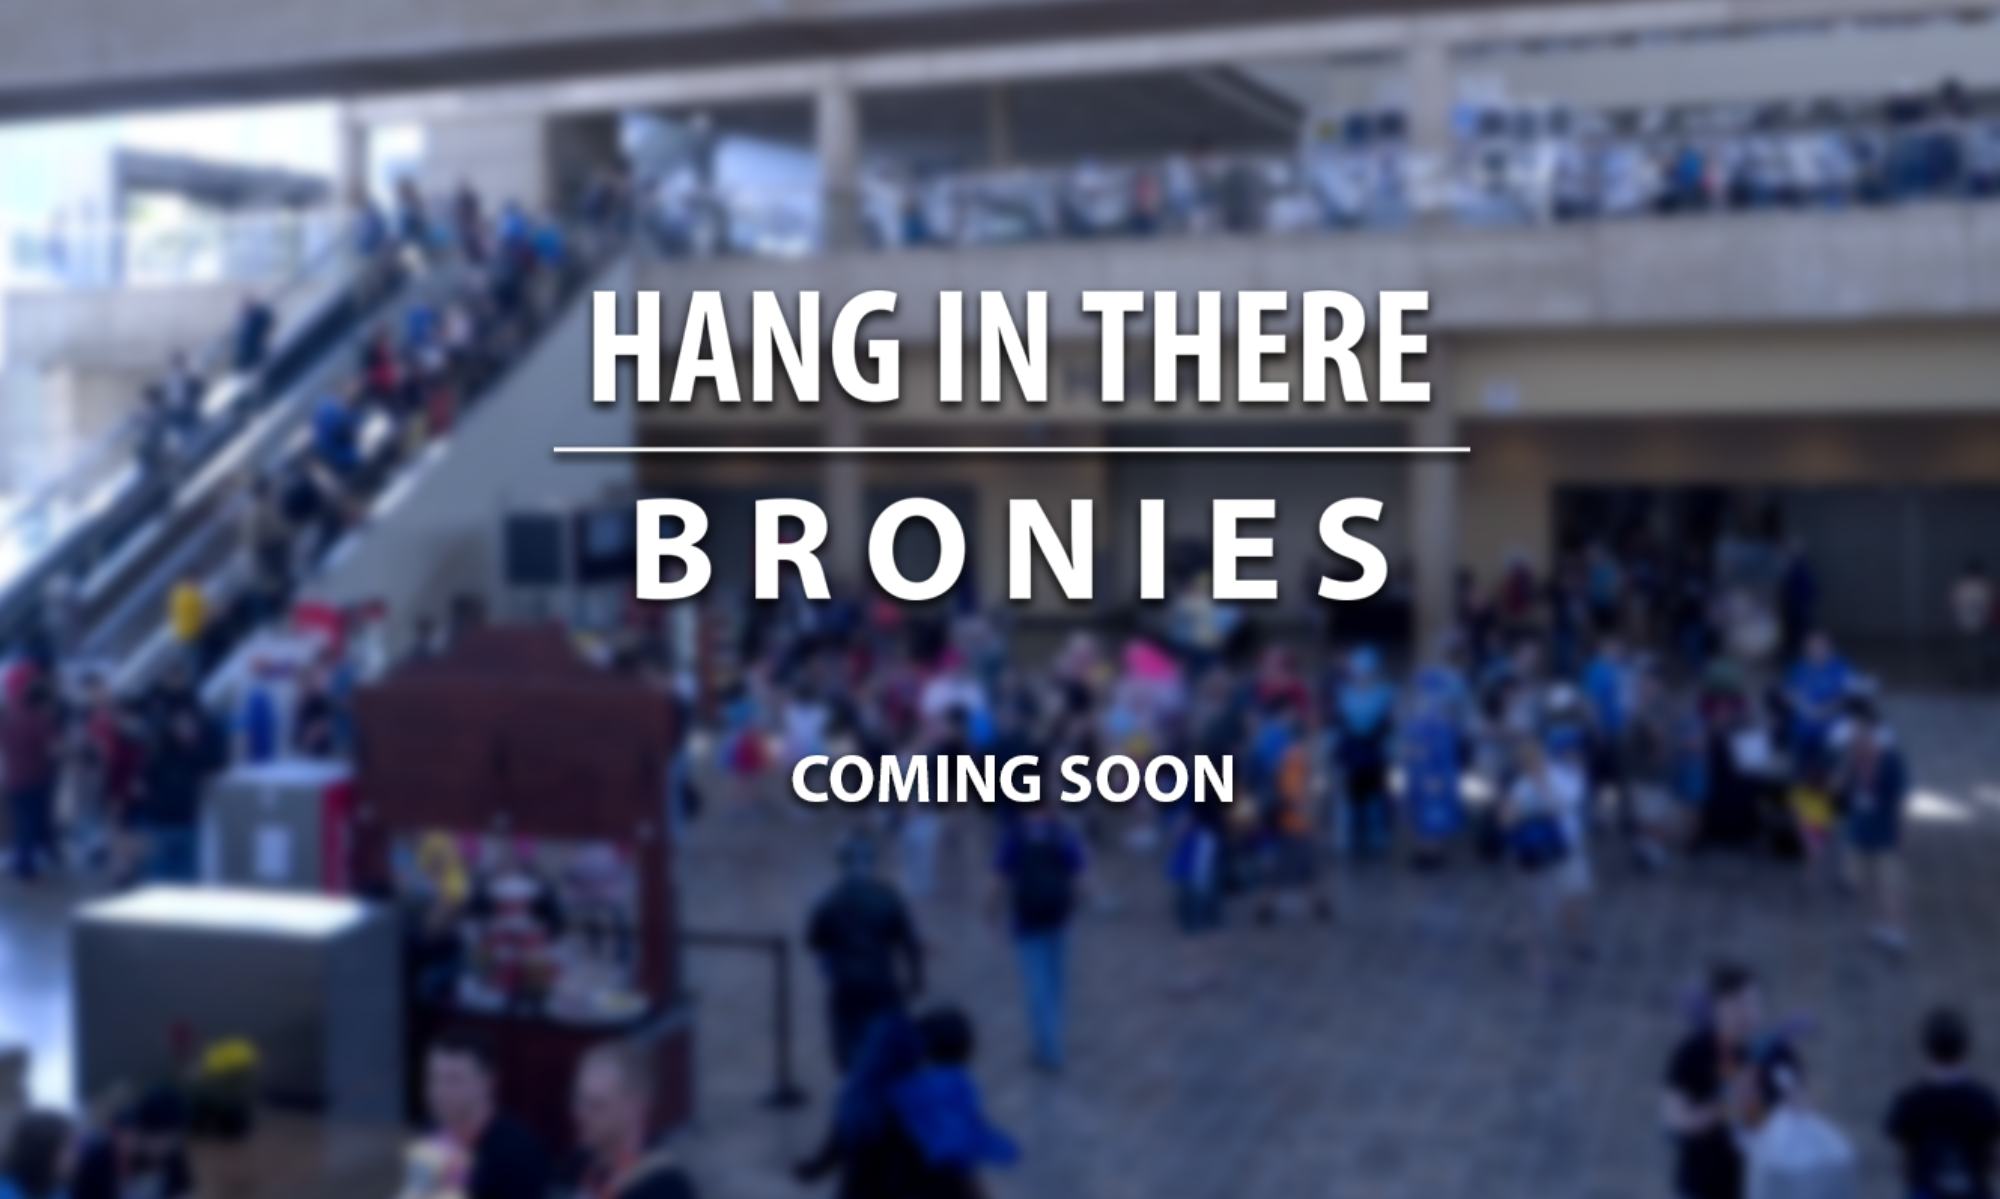 HANG IN THERE - BRONIES